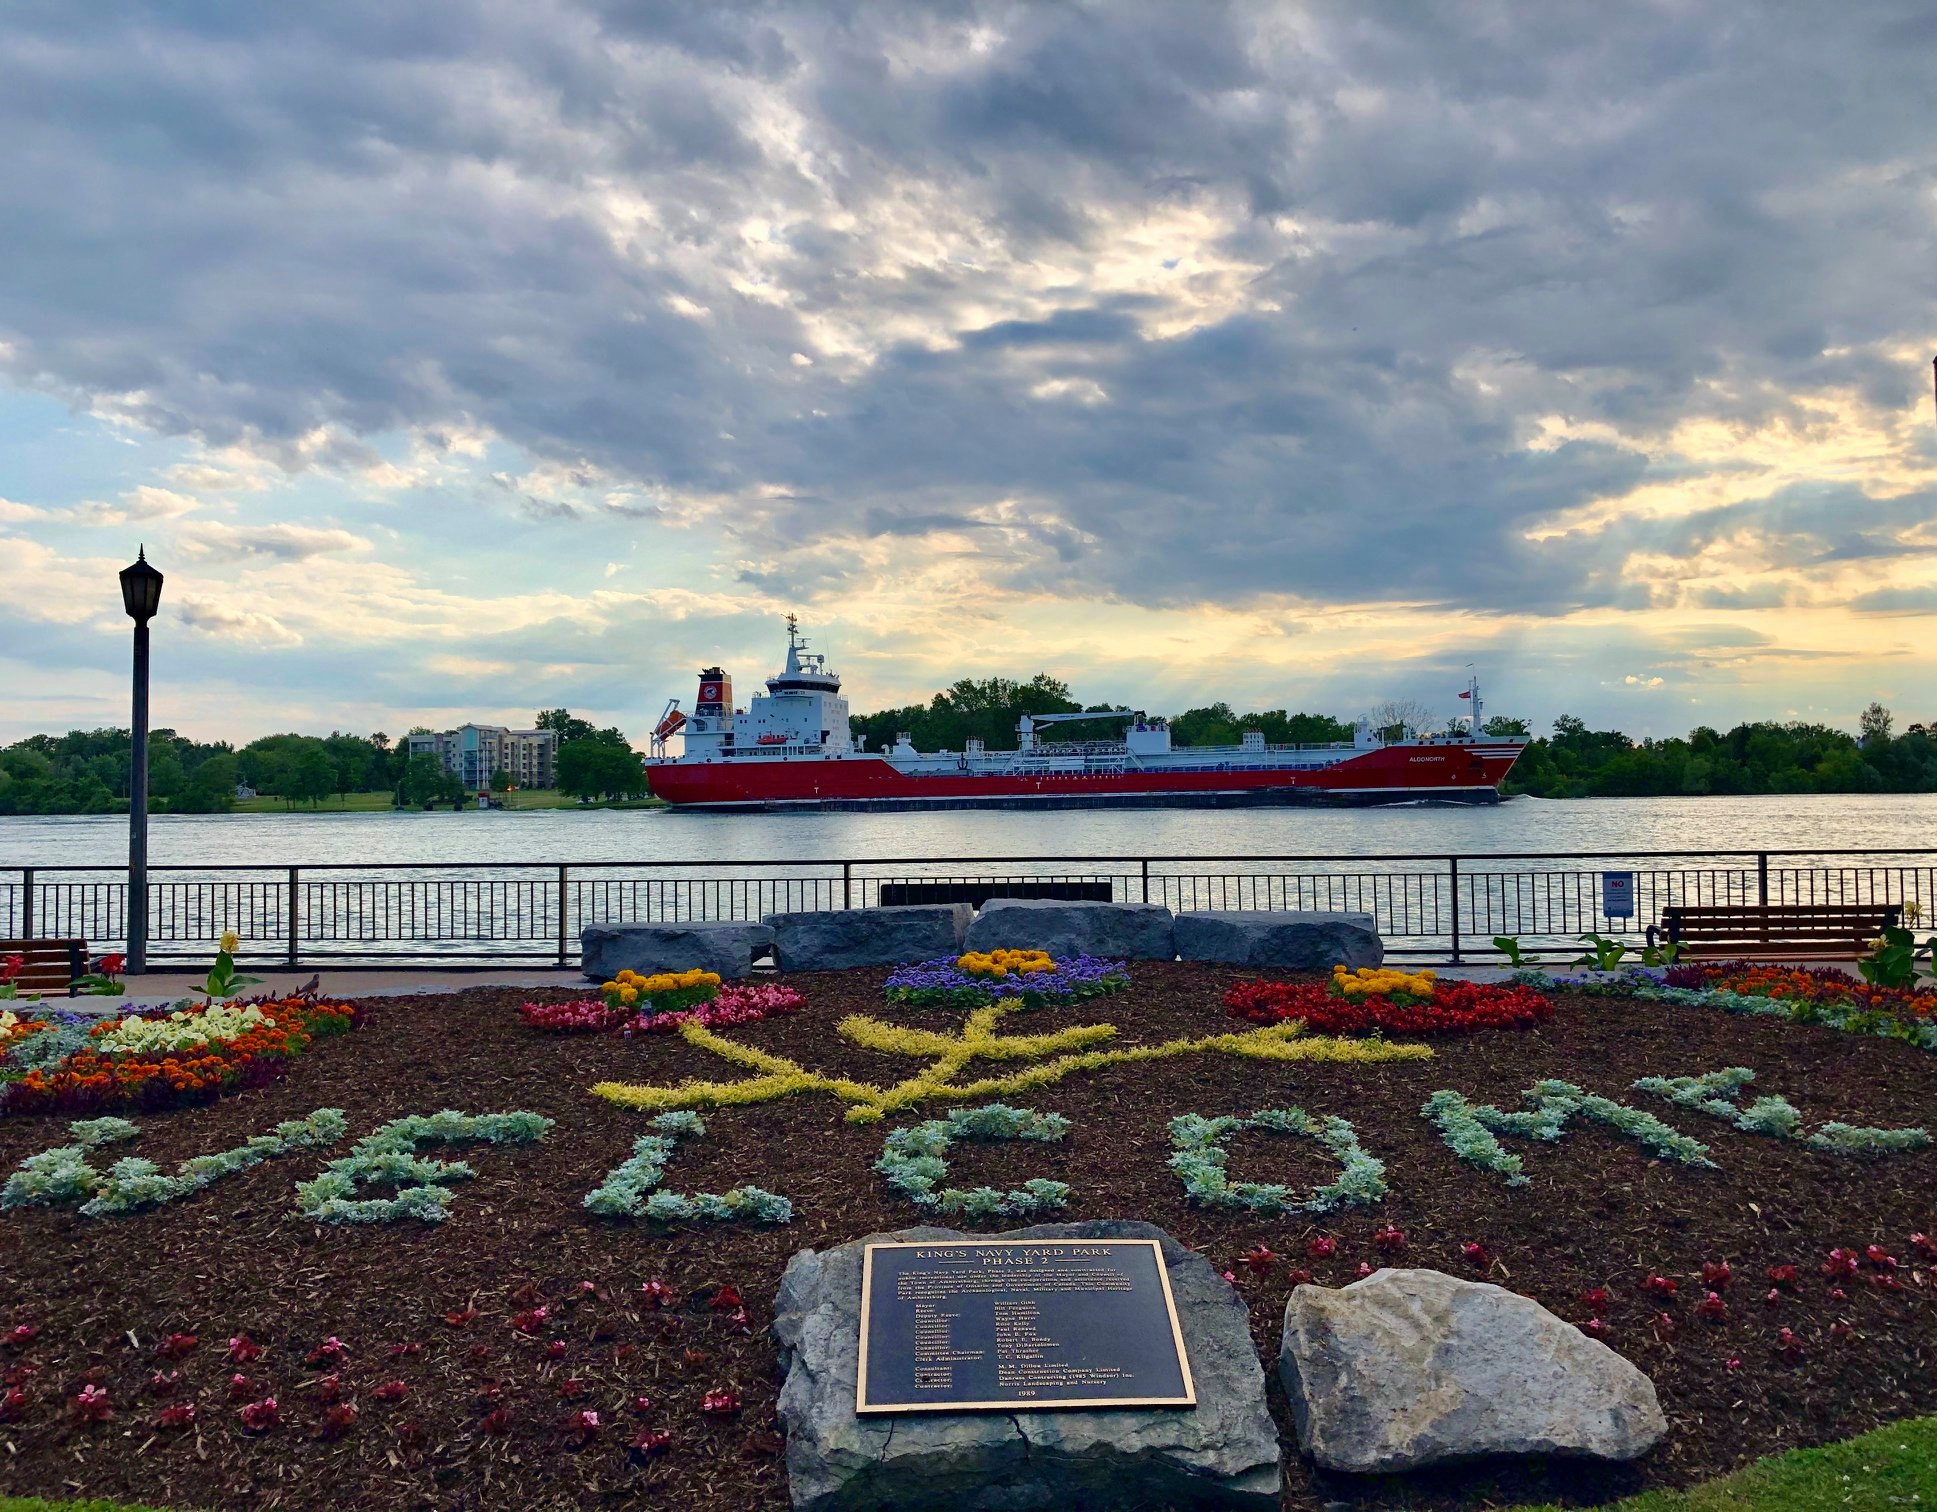 A boat cruises on the Detroit River and in the foreground it spells Welcome in a garden.